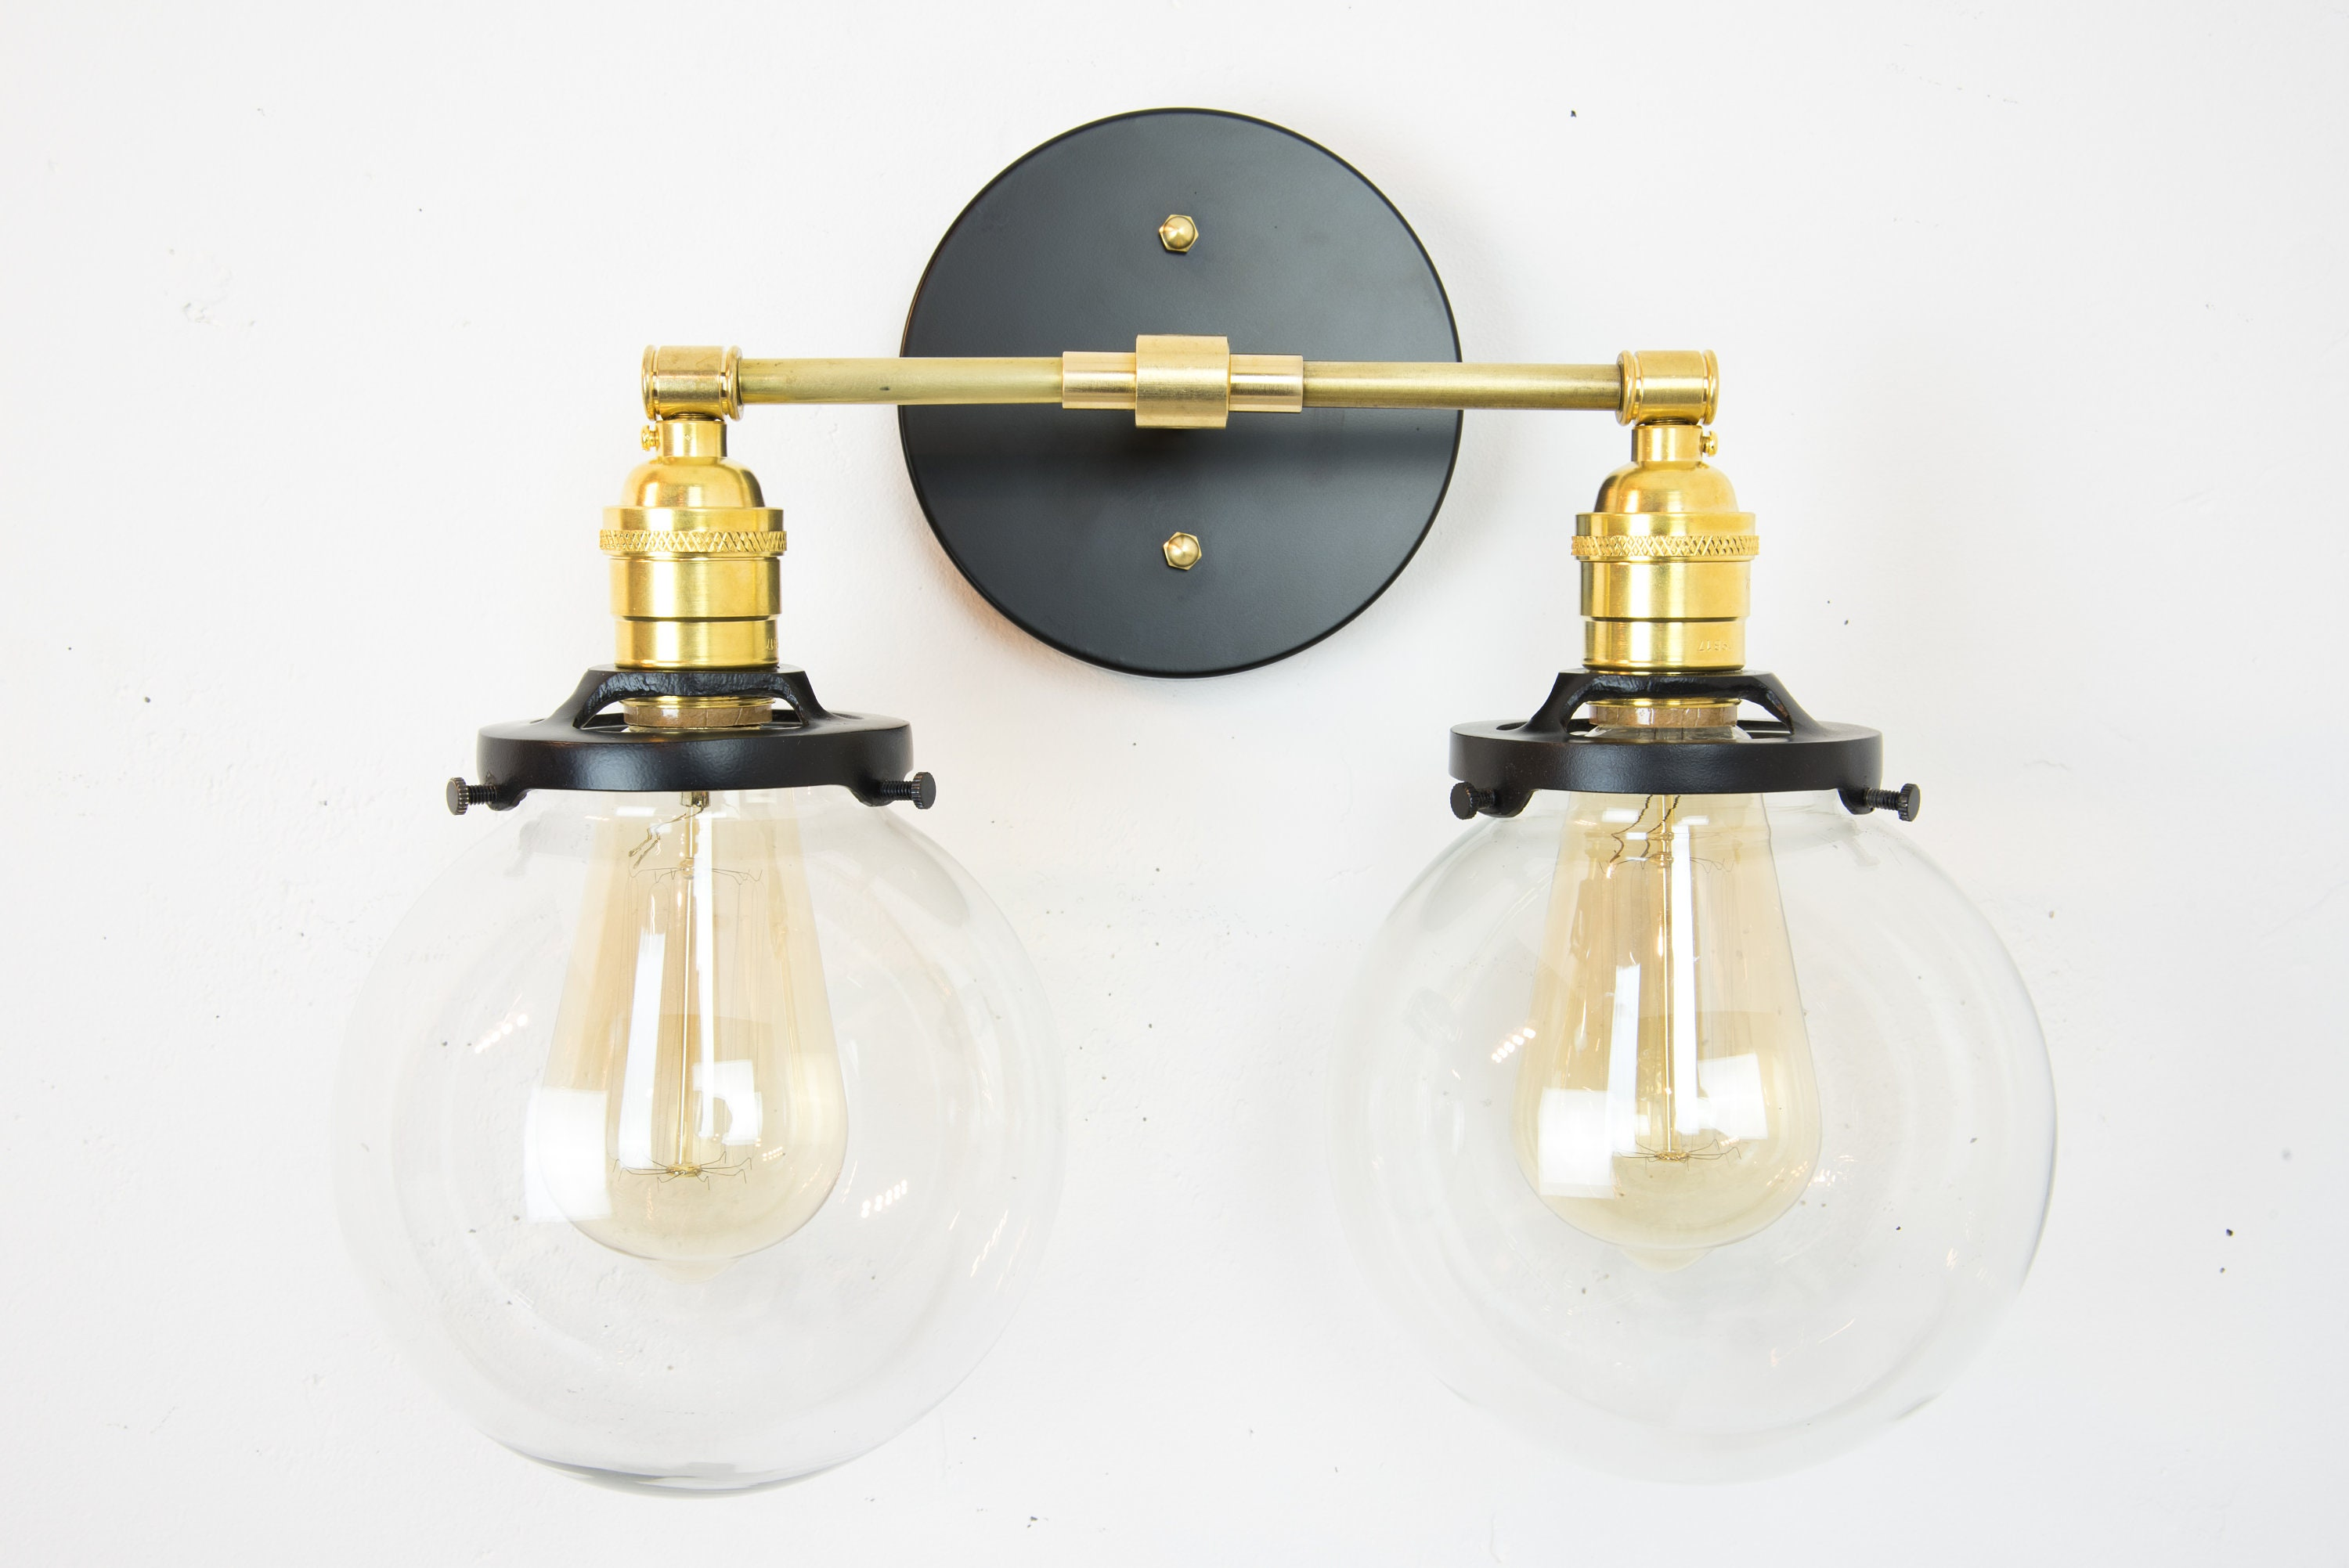 Bathroom Lights | Vanity Lights | Bathroom Light Fixtures | Wall Lamp |  Wall Sconces | Modern Lights | Globe Sconces | Brass Lights | Black